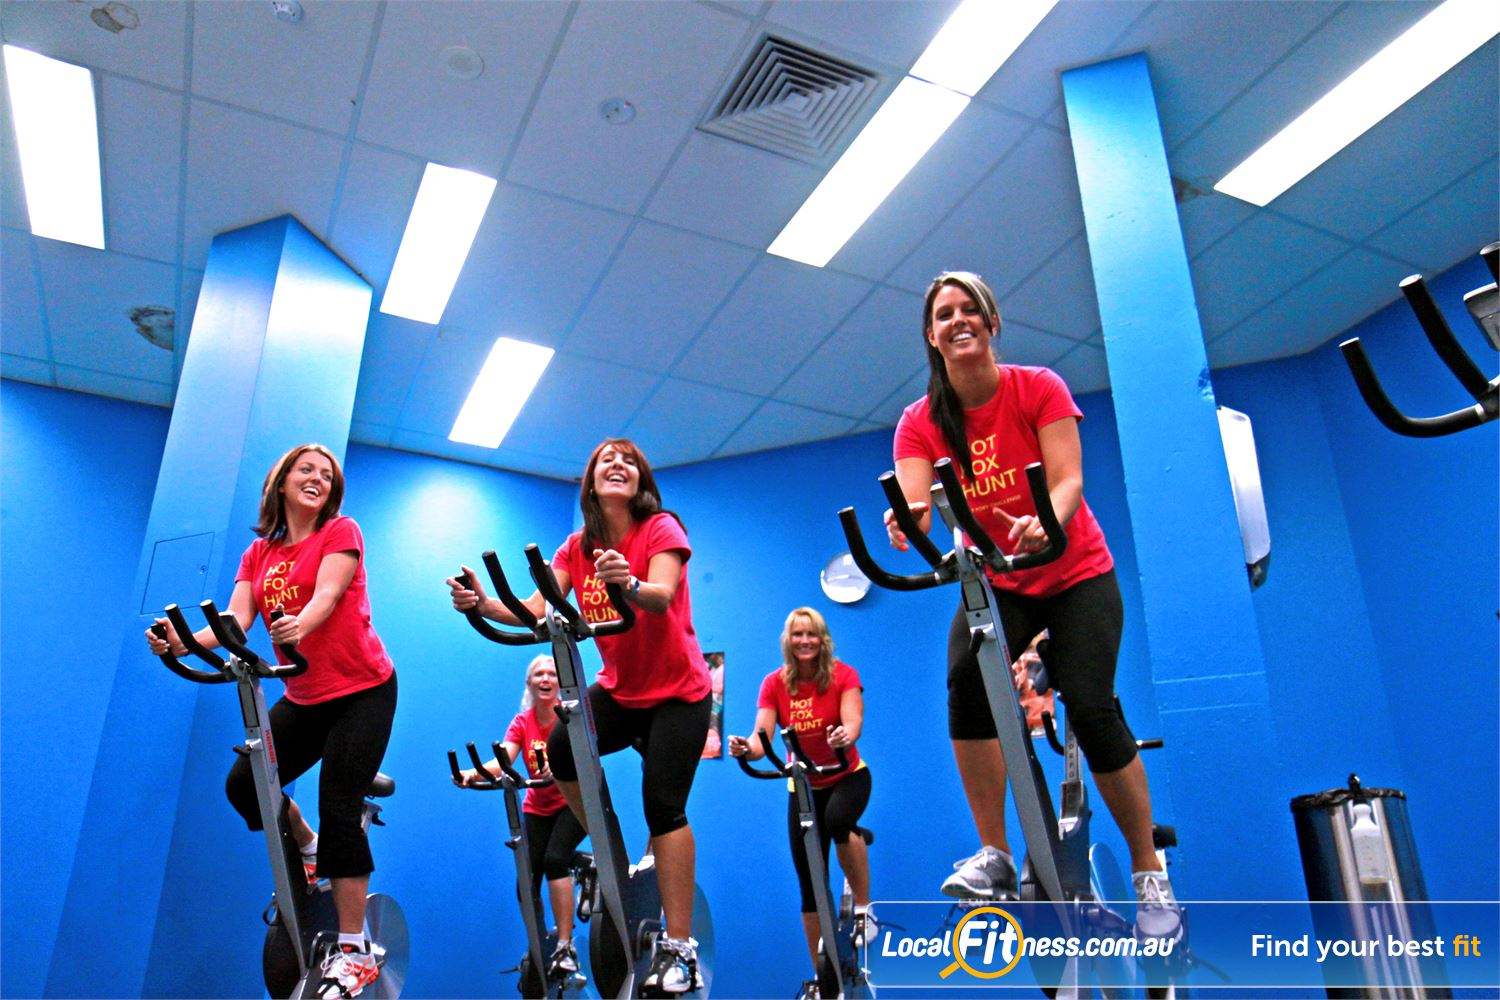 Fernwood Fitness Near Glen Alpine Music to encourage you to get moving during Campbelltown spin cycle classes.